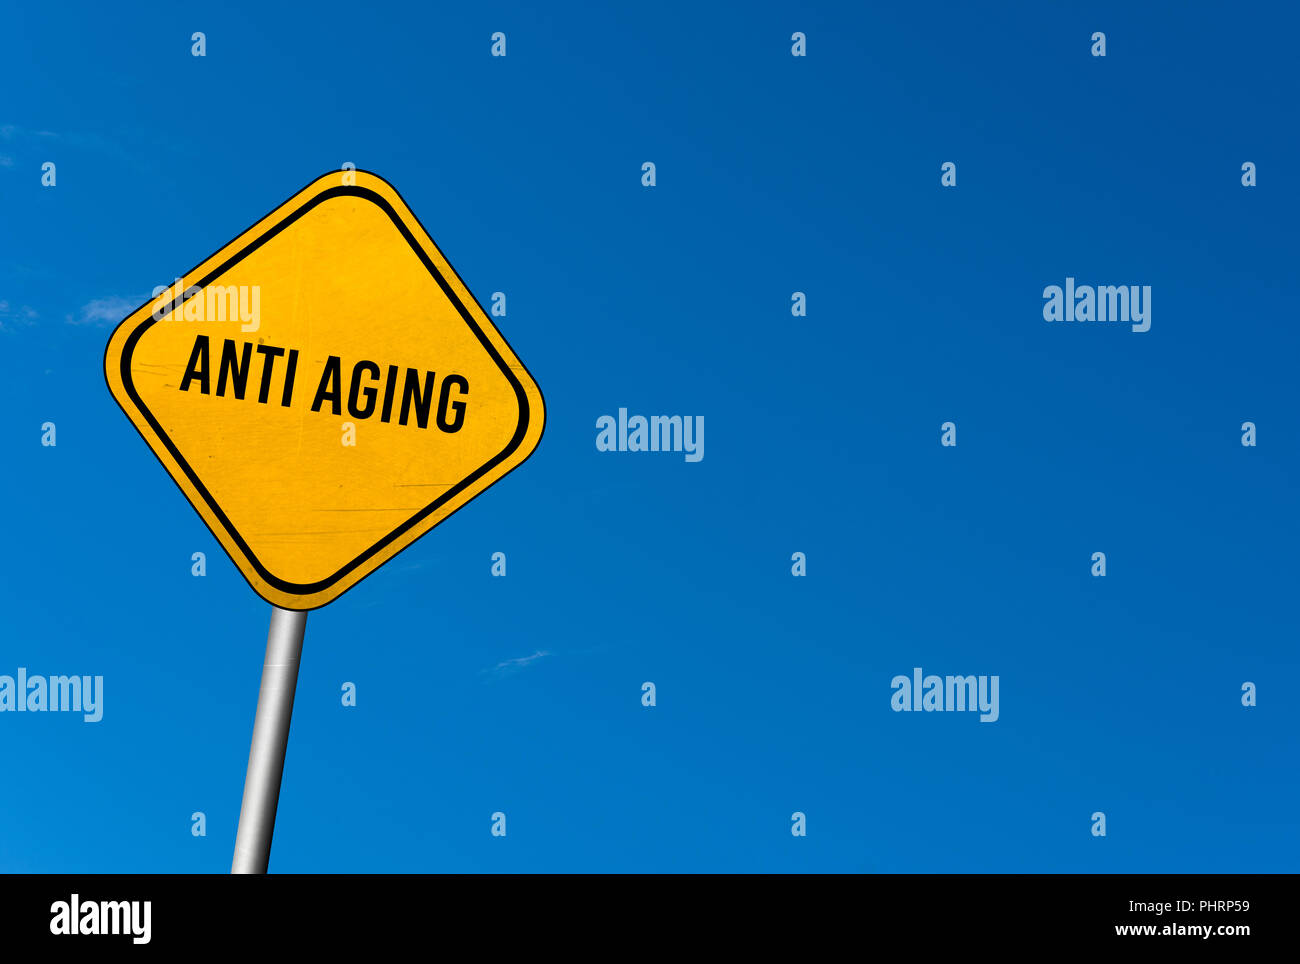 anti aging - yellow sign with blue sky - Stock Image